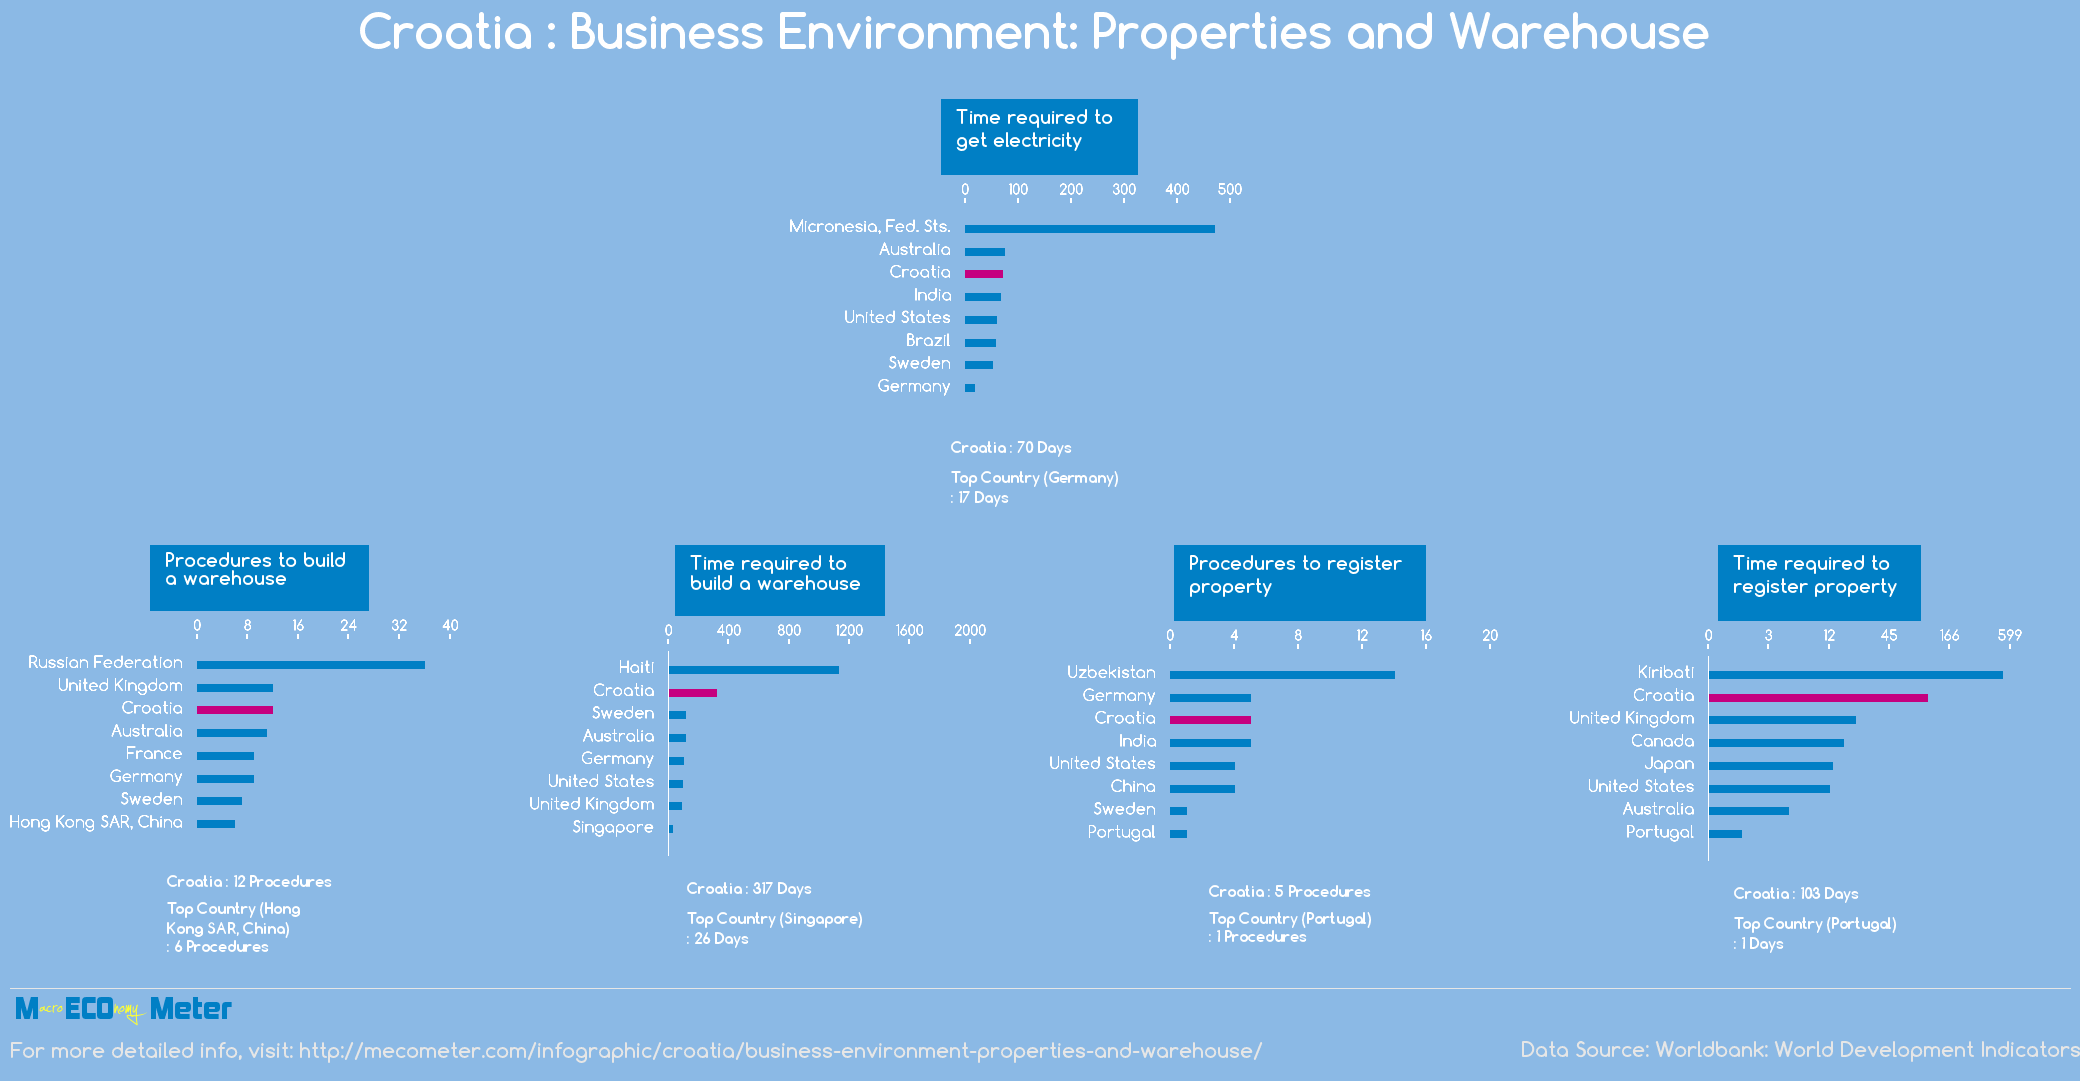 Croatia : Business Environment: Properties and Warehouse